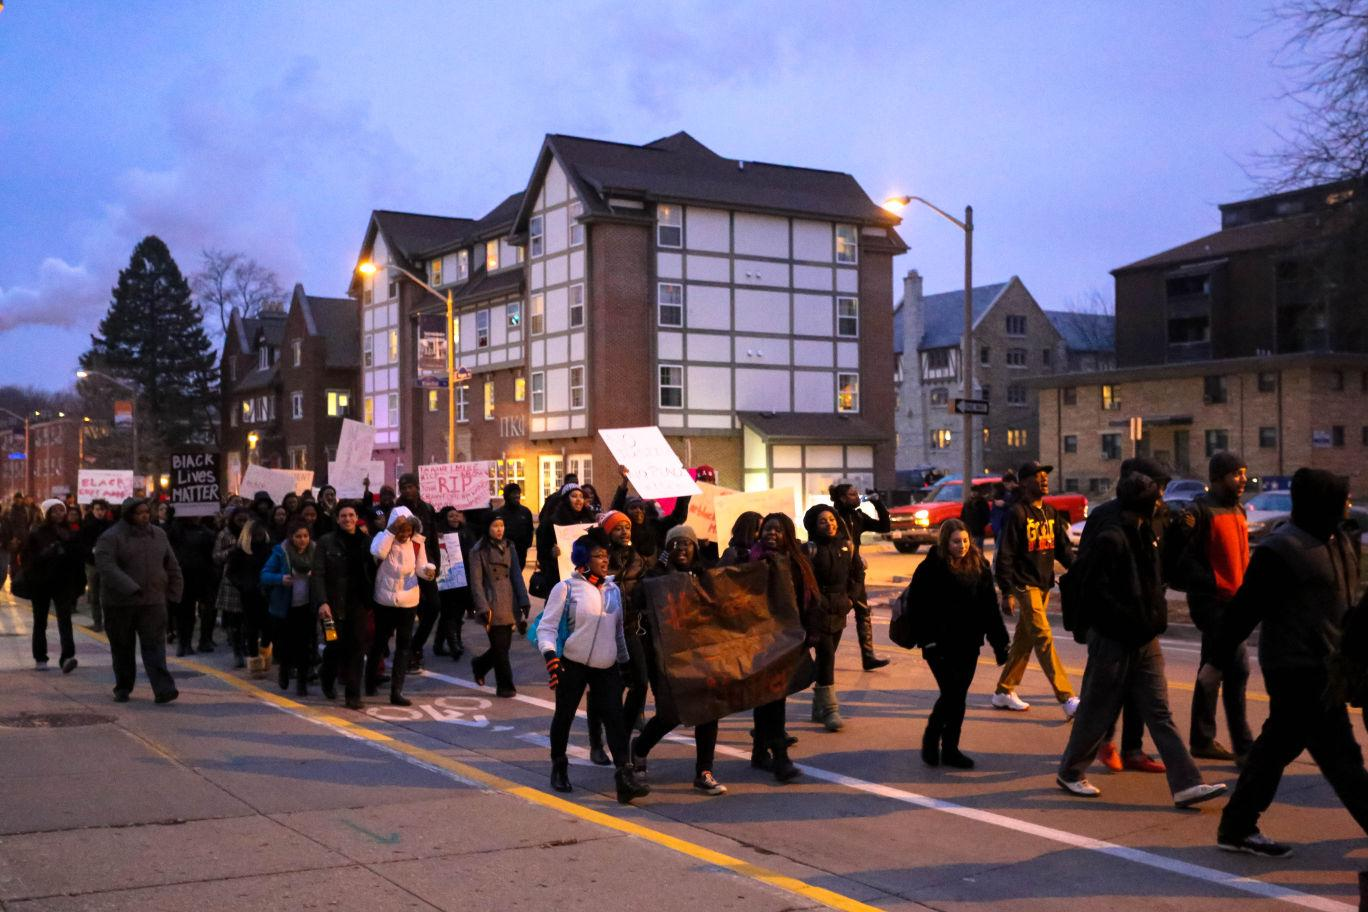 Hundreds+of+students+marched+Tuesday+evening+in+a+peaceful+protest%2C+organized+by+the+Central+Black+Student+Union%2C+of+the+recent+events+in+Ferguson.